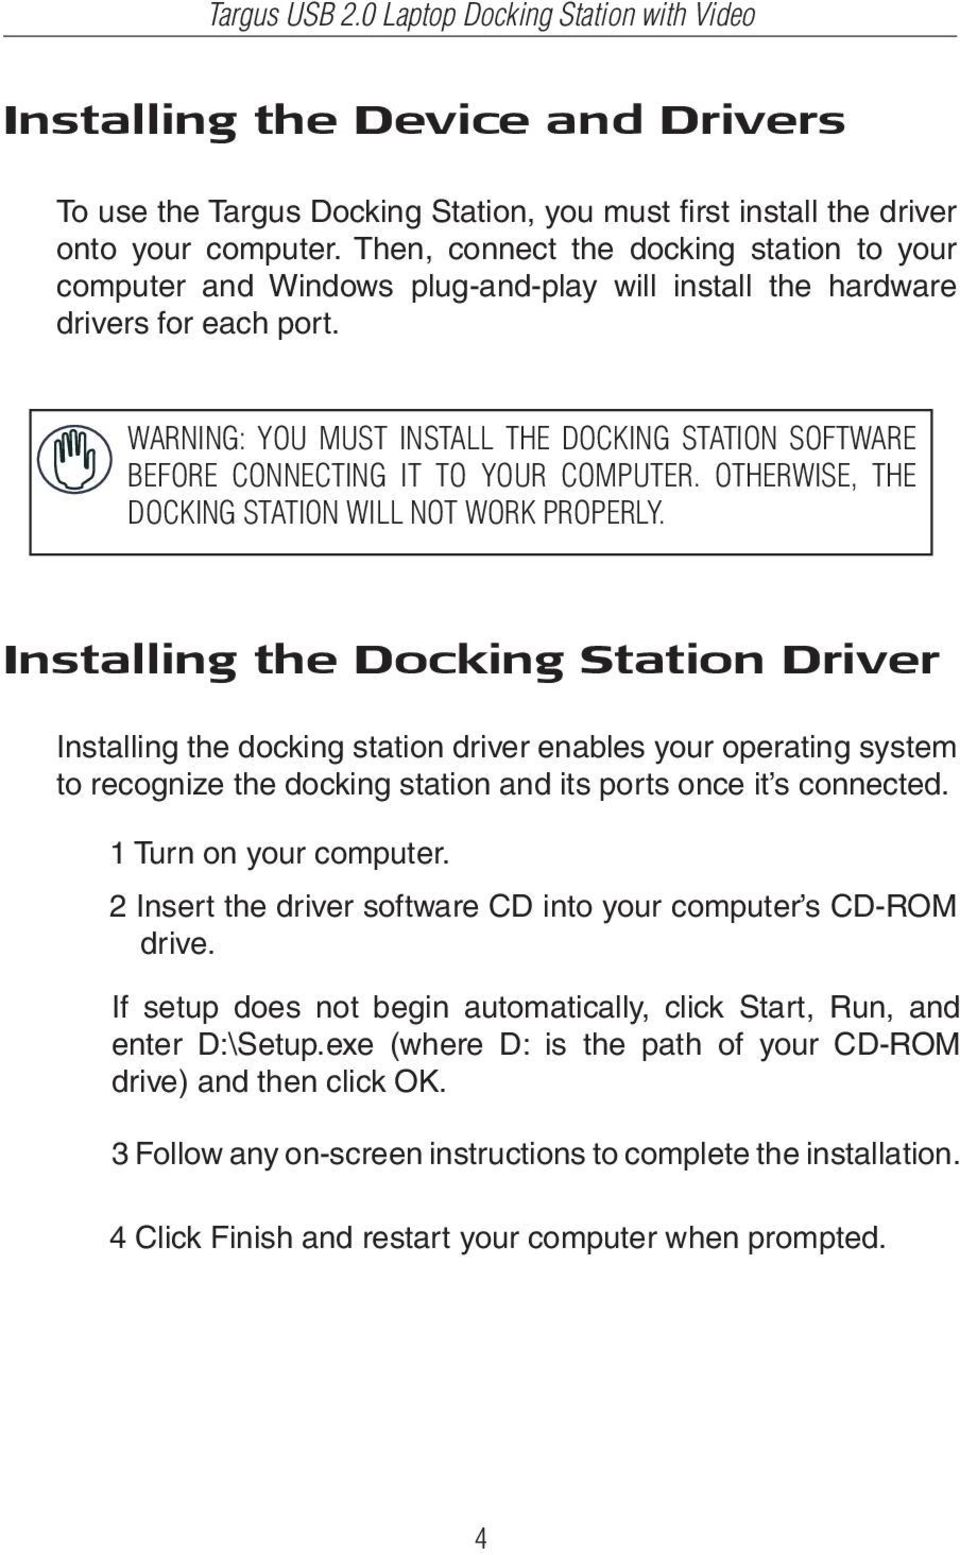 WARNING: YOU MUST INSTALL THE DOCKING STATION SOFTWARE BEFORE CONNECTING IT TO YOUR COMPUTER. OTHERWISE, THE DOCKING STATION WILL NOT WORK PROPERLY.